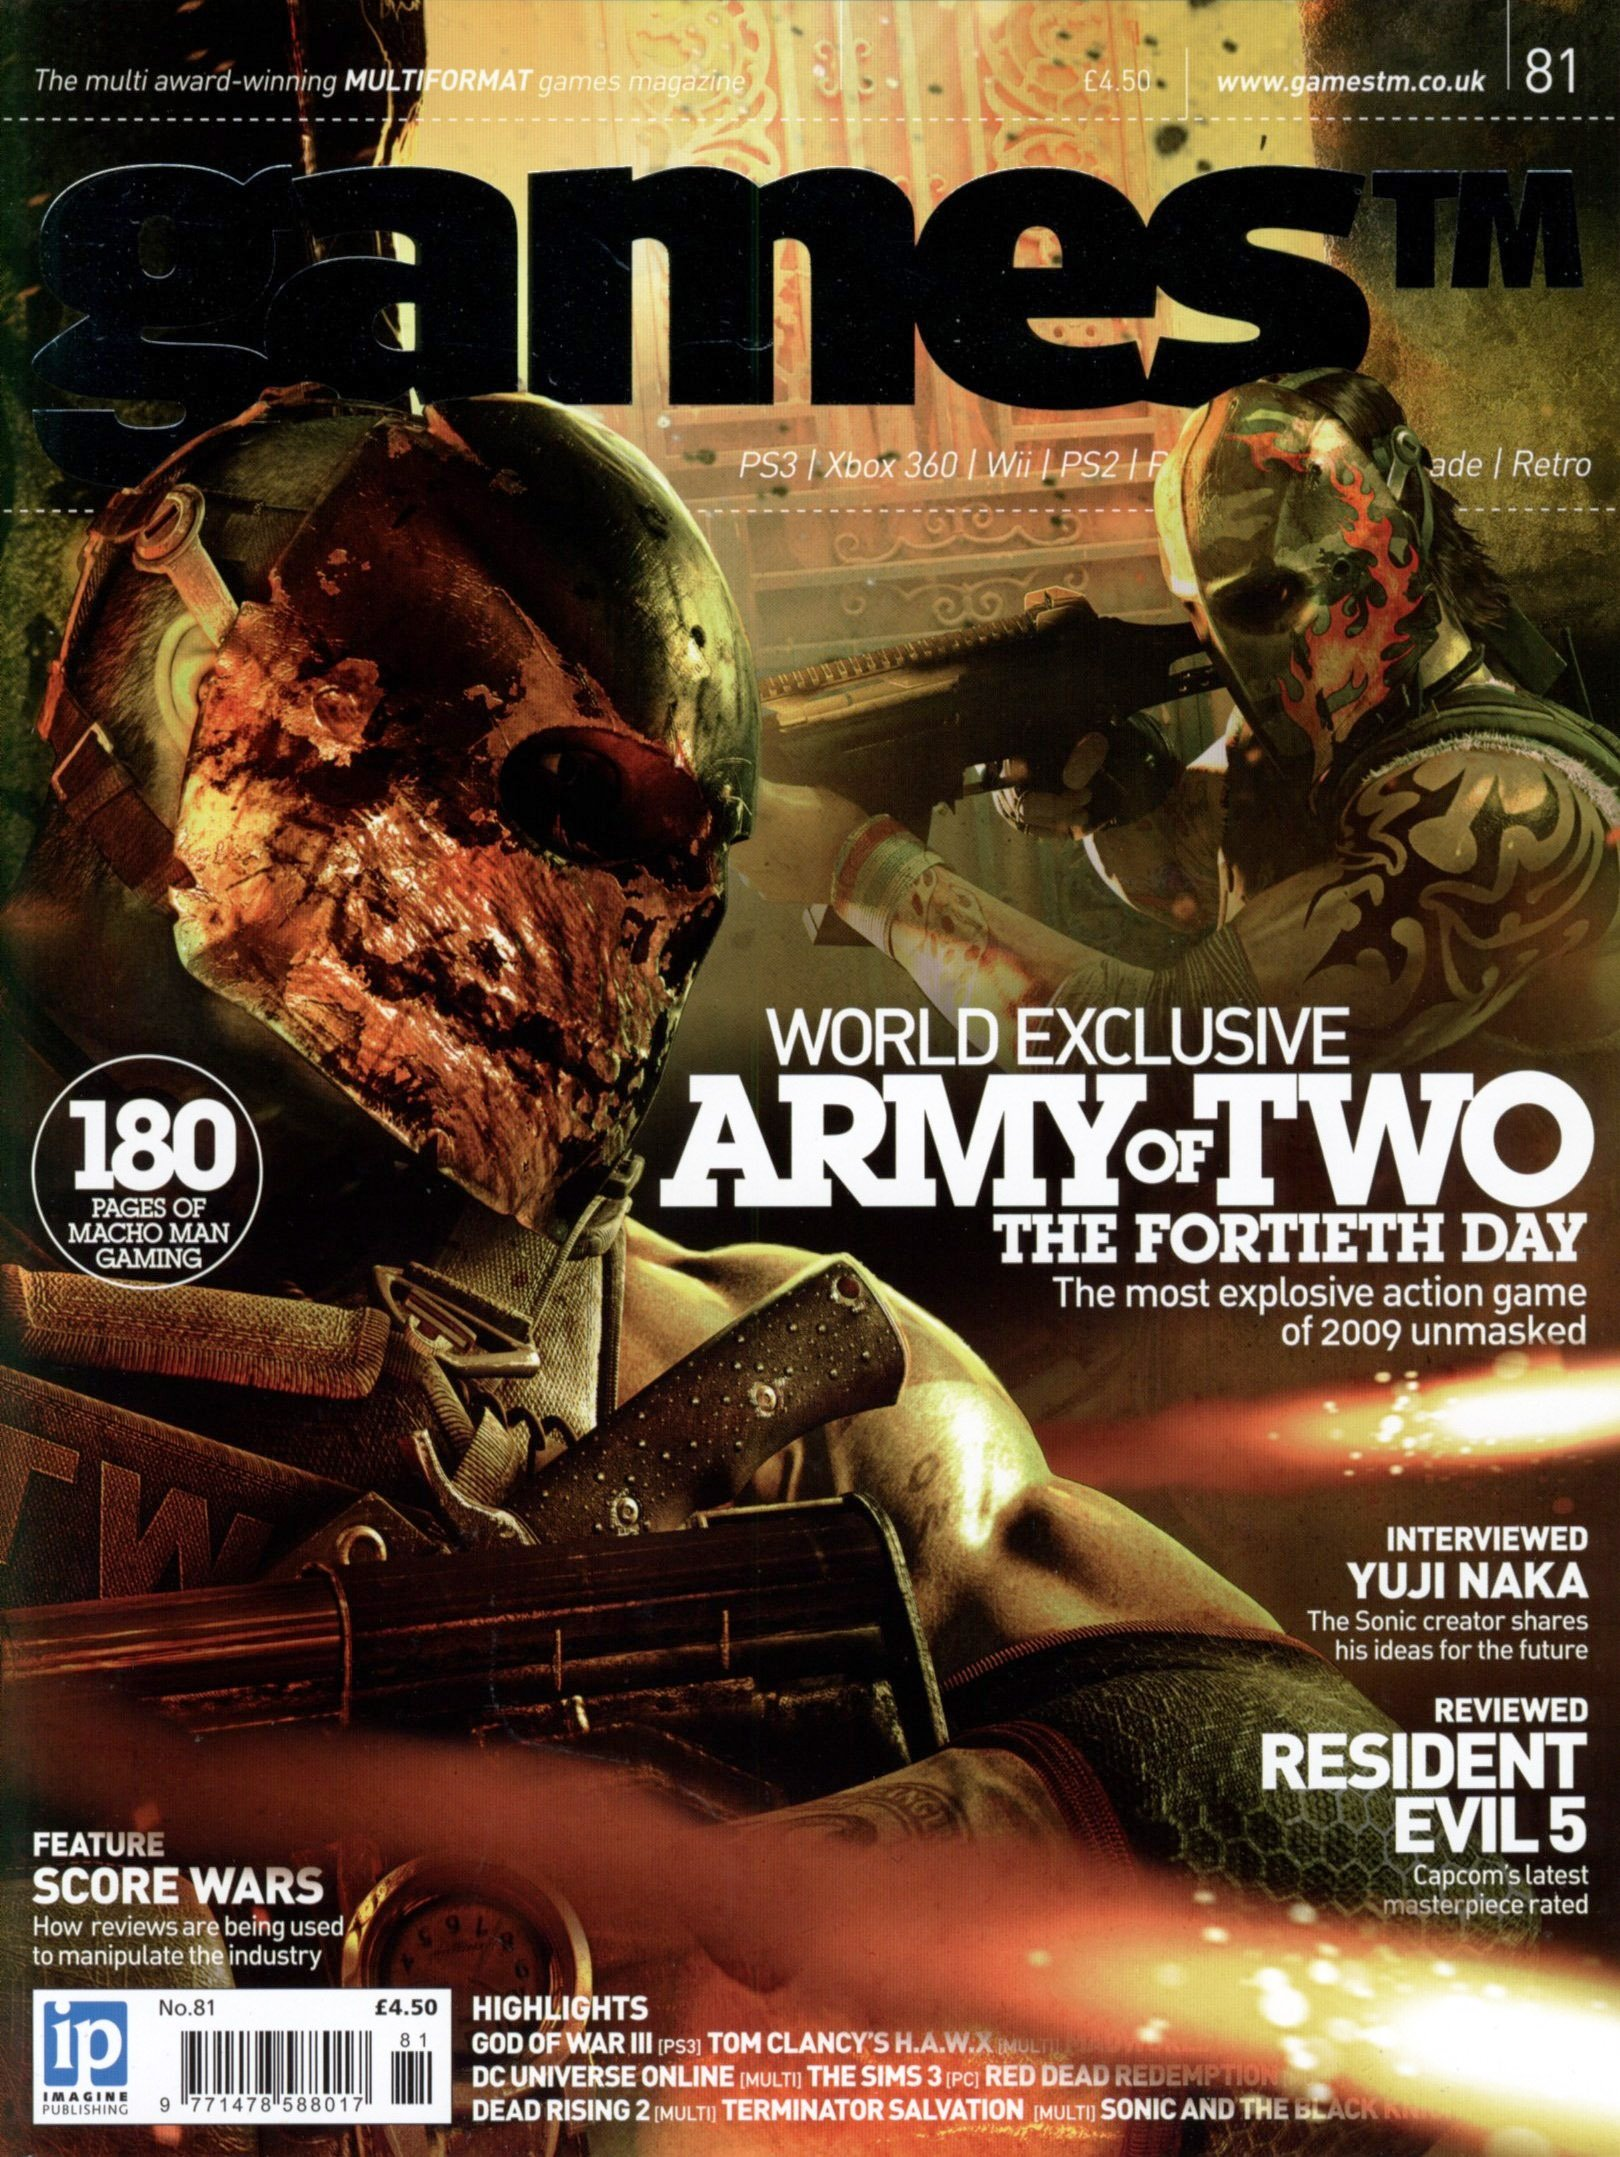 Games TM Issue 081 (March 2009)